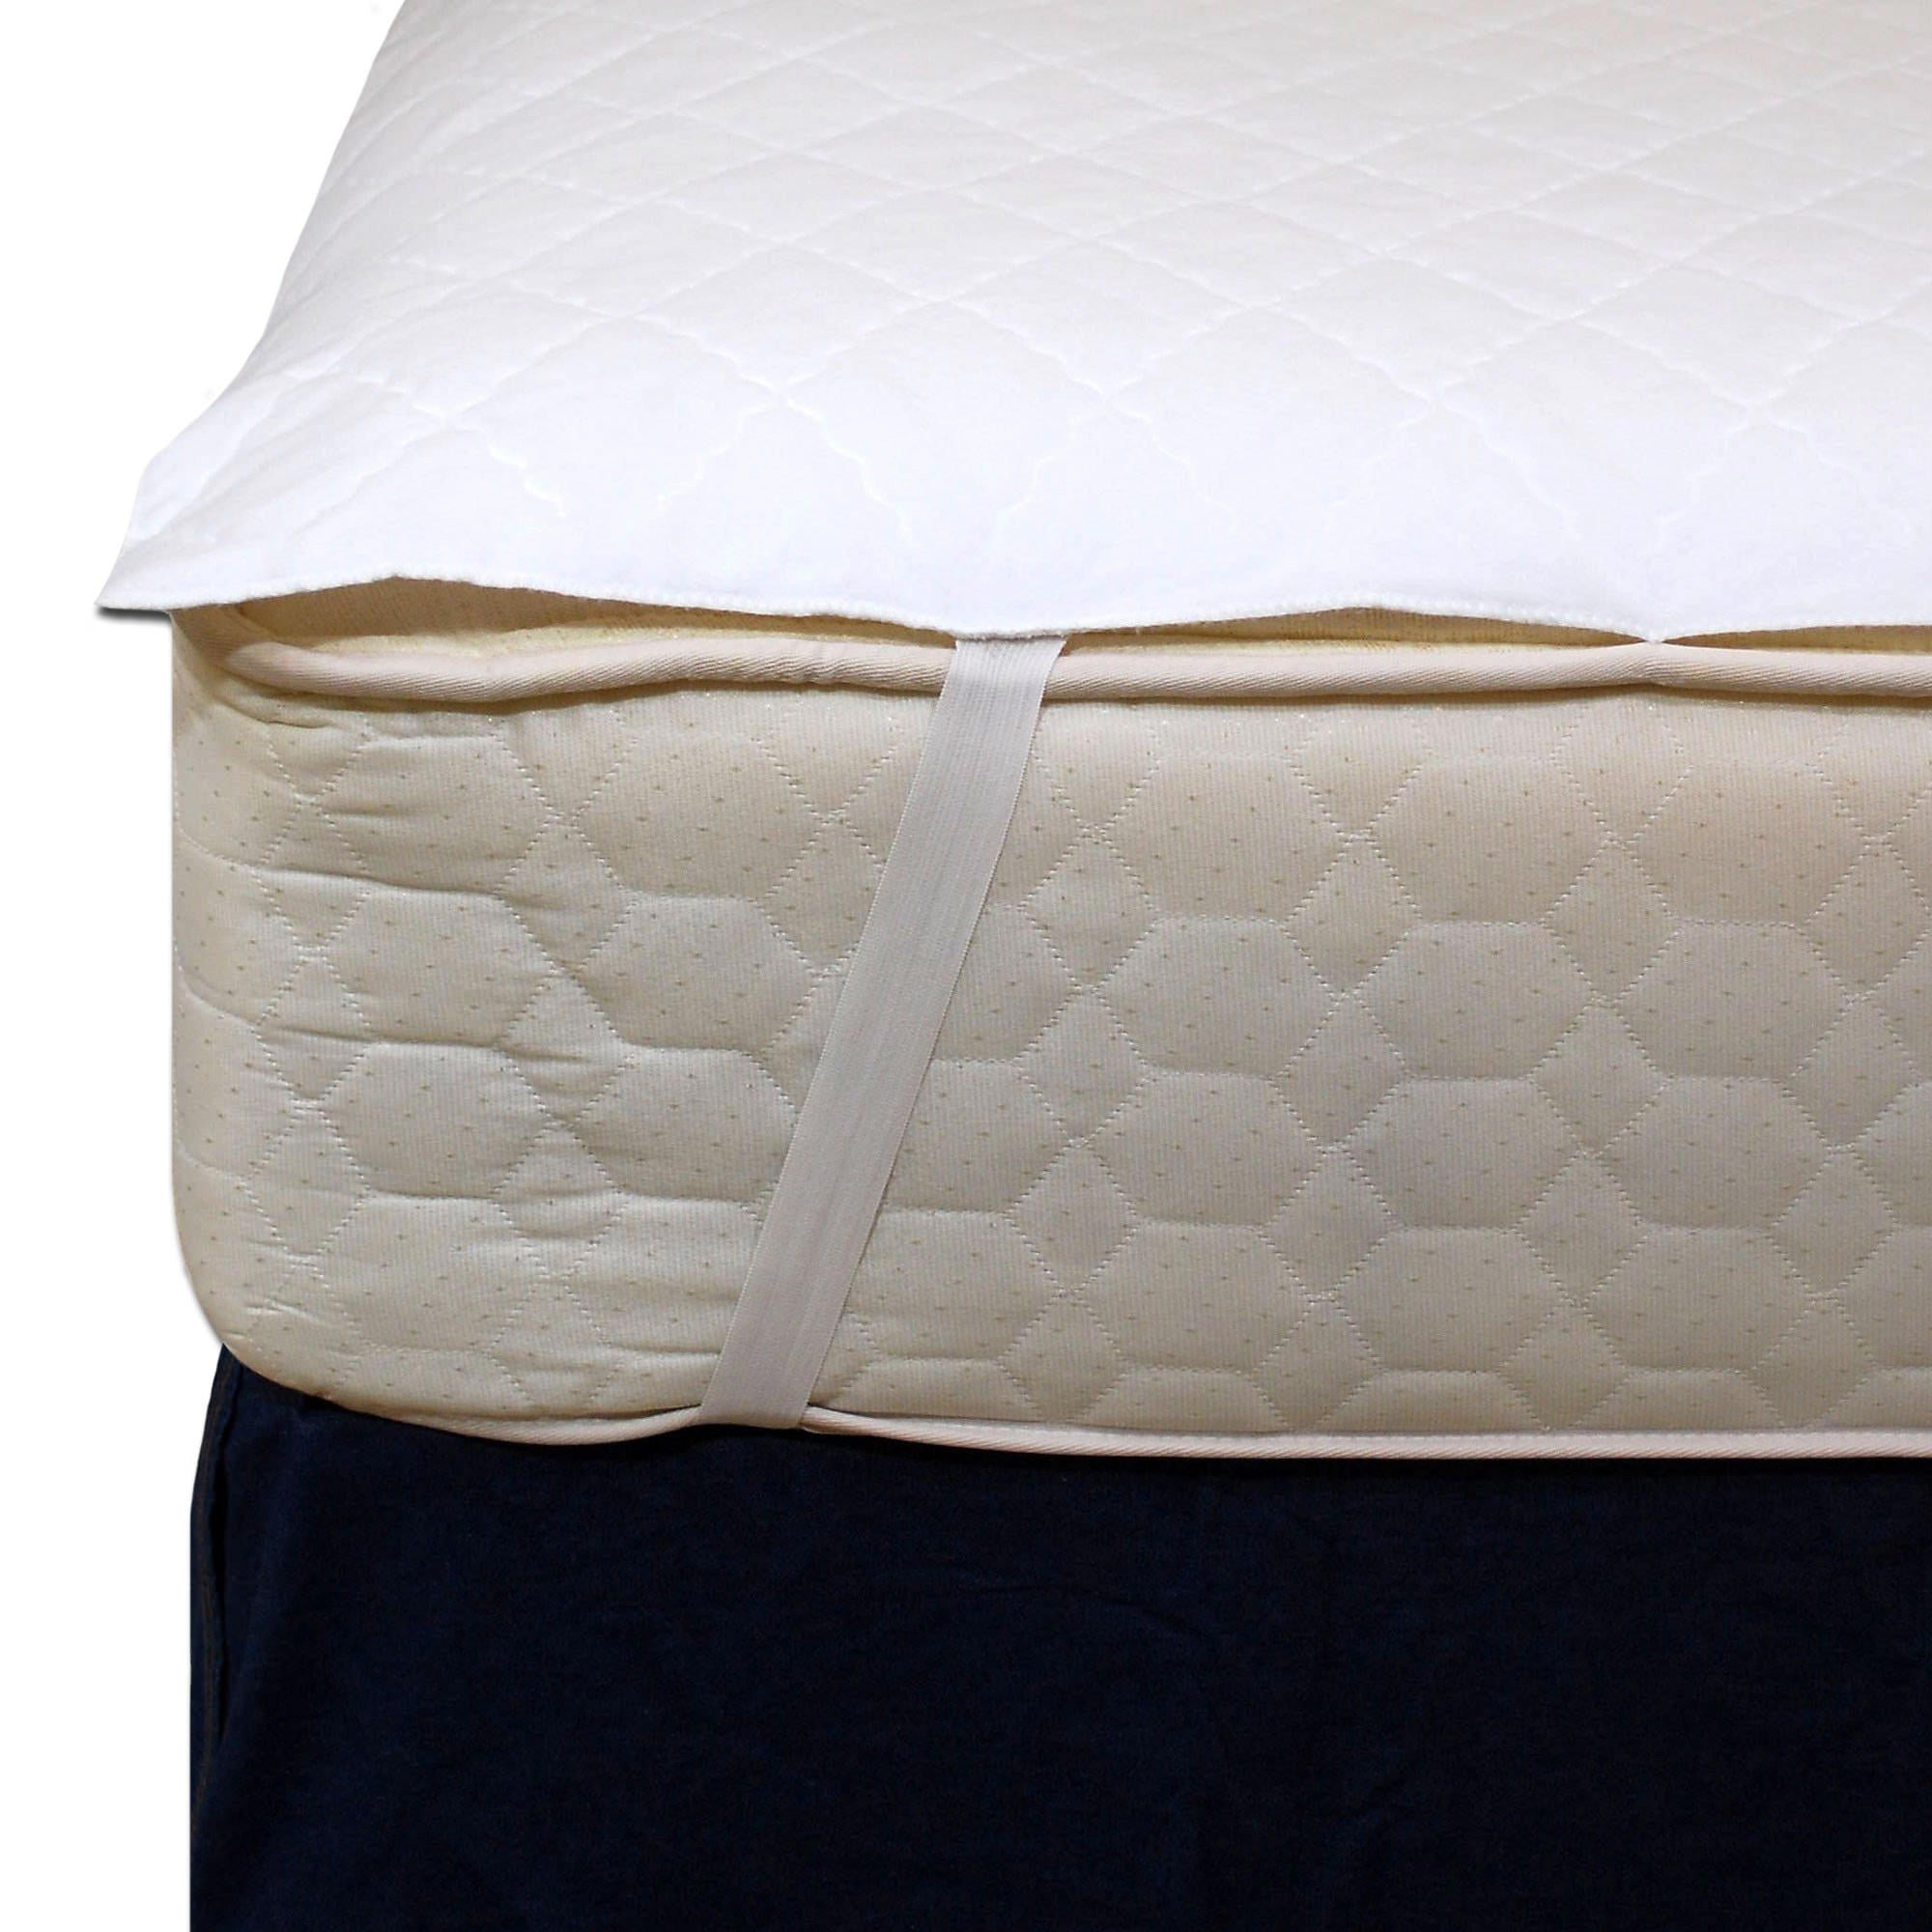 Underpads-Waterproof Mattress Protector with Anchor Bands